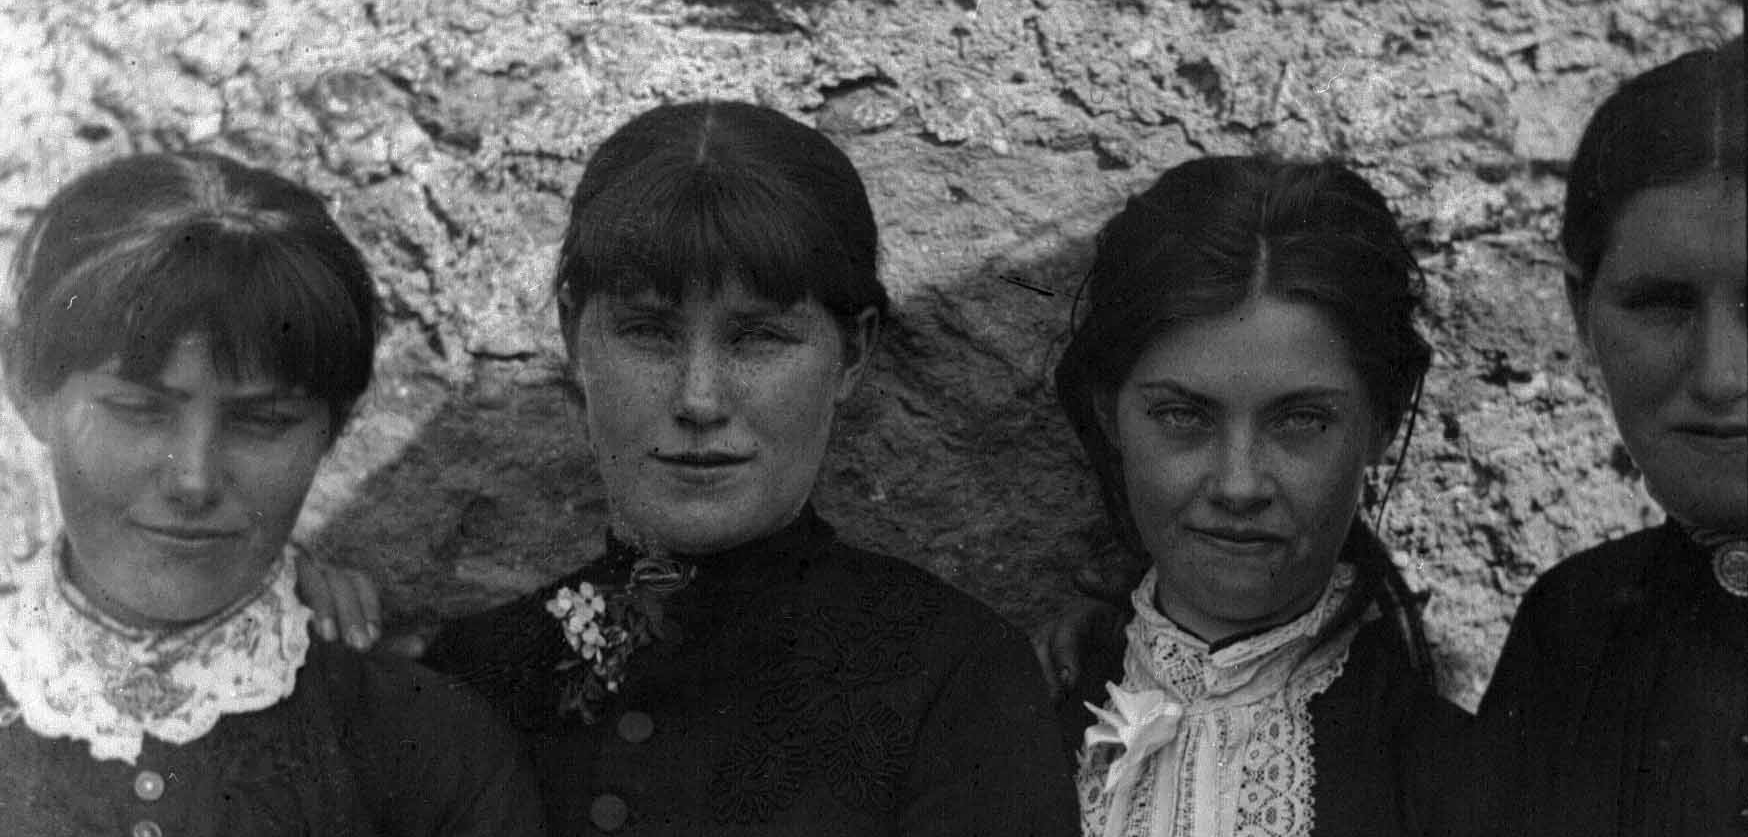 Members of the O'Halloran family at their home in Bodyke, Co. Clare, c1890.